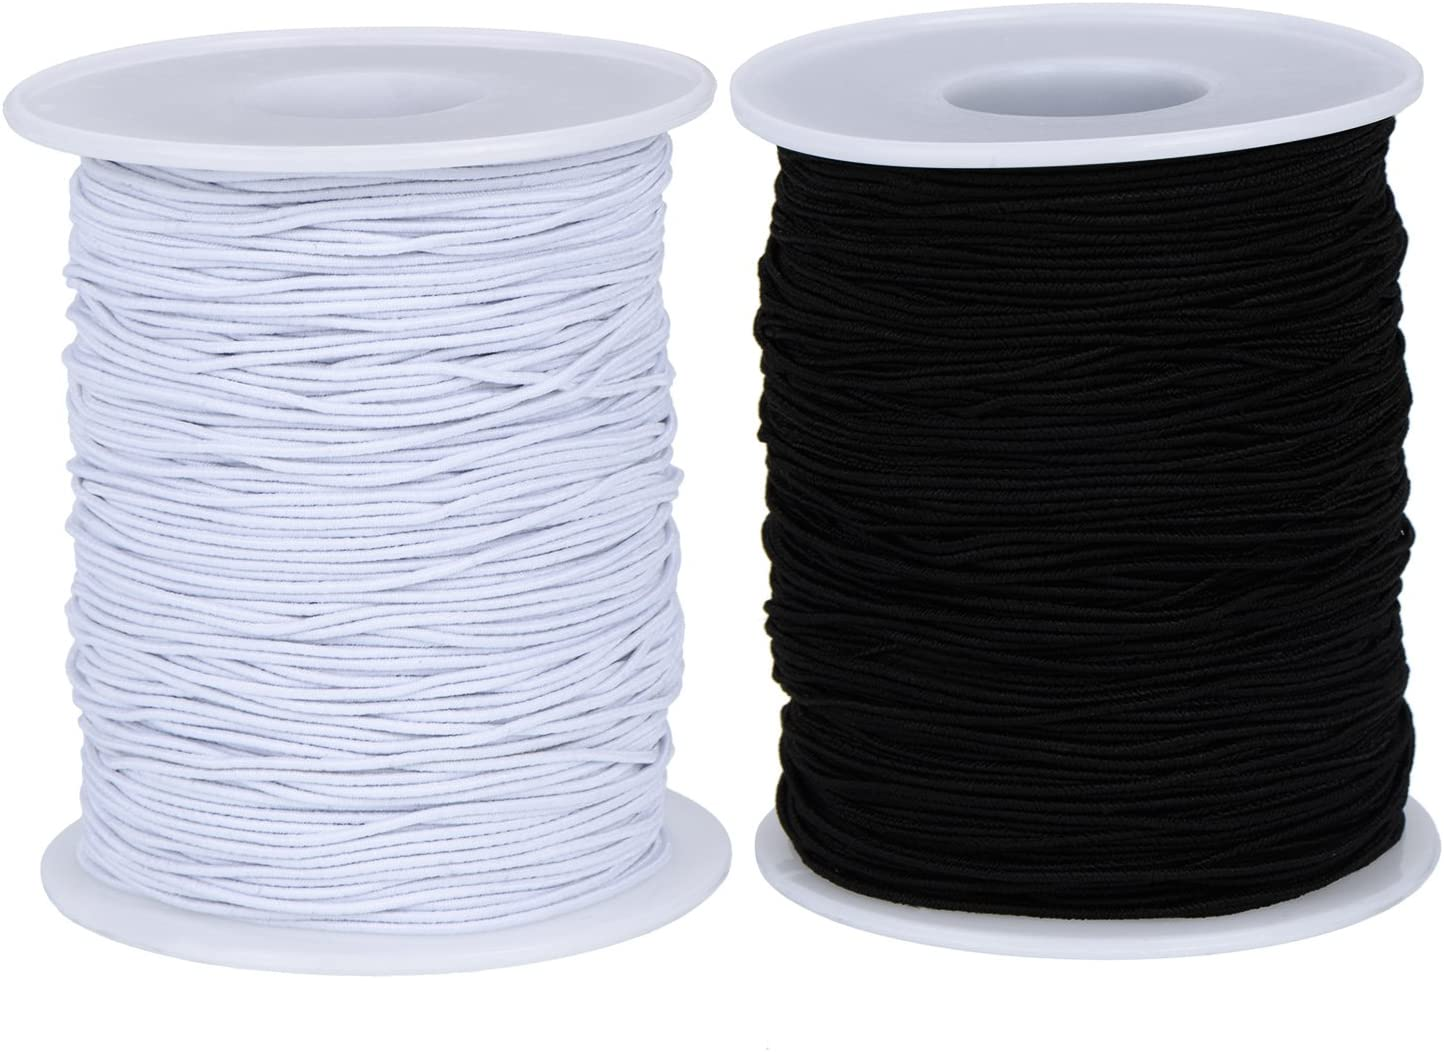 1 roll Strong Elastic Stretchy Beading 0.8mm Thread Cords For Jewelry Making